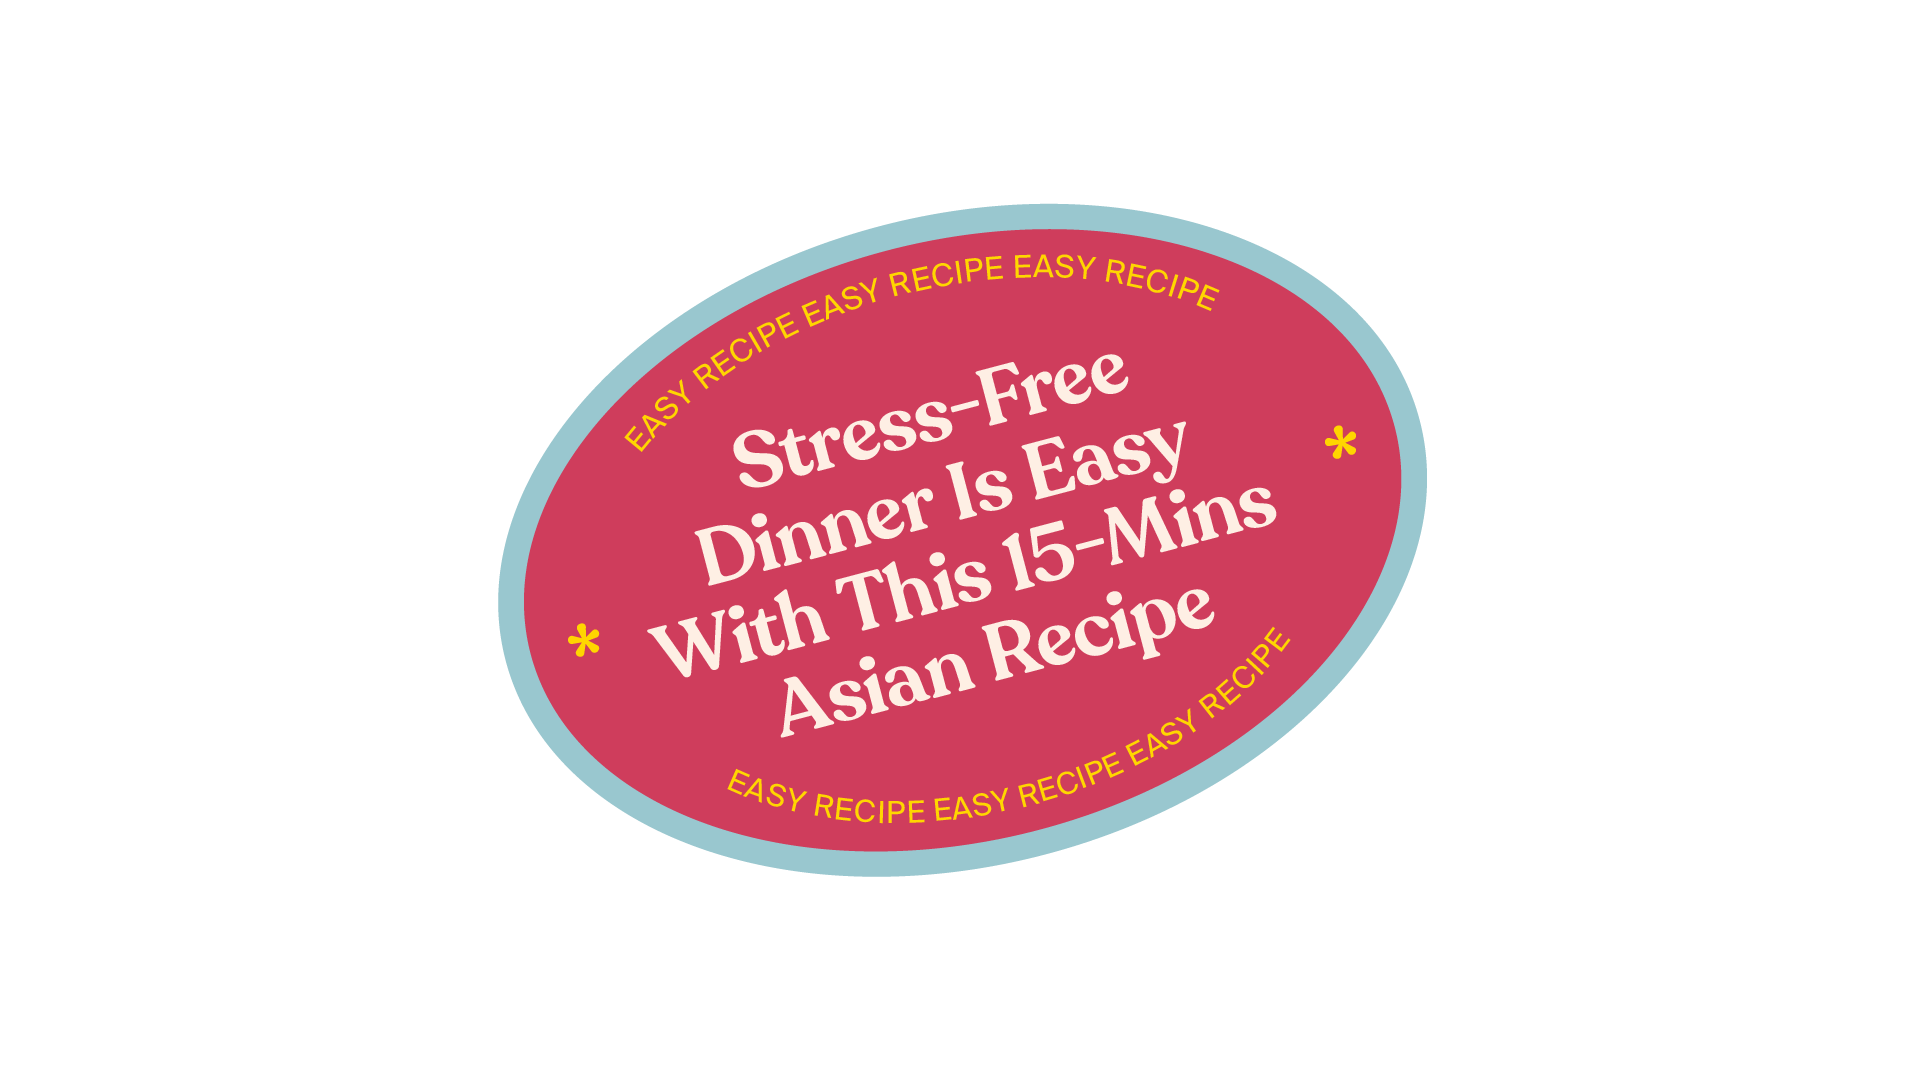 Say Goodbye To Stressful Cooking With This Easy 15-Mins Asian Dinner Recipe